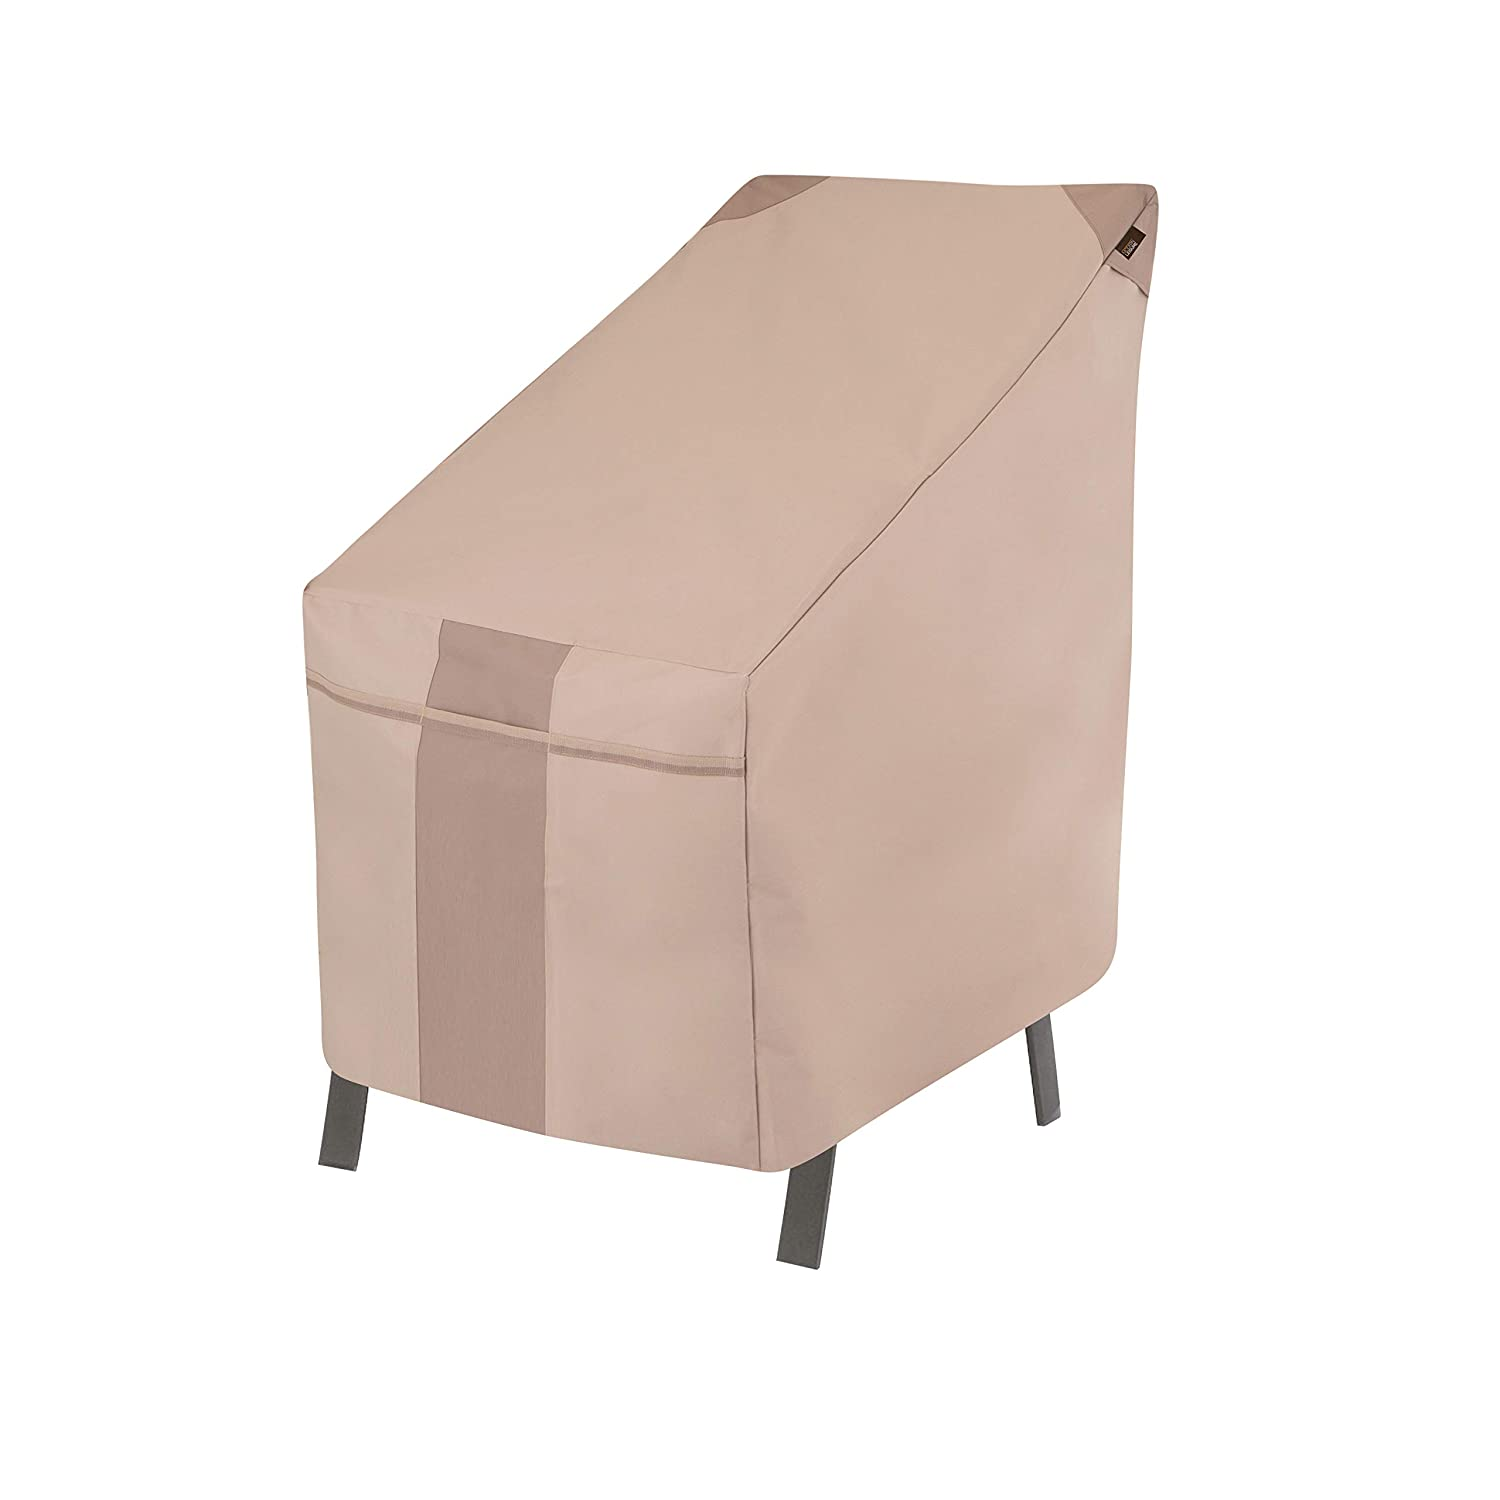 Modern Leisure 2901 Monterey High Back Patio, Stackable Chairs, Outdoor Cover (25.5 L x 35.5 D x 45 H inches) Water-Resistant, Khaki/Fossil